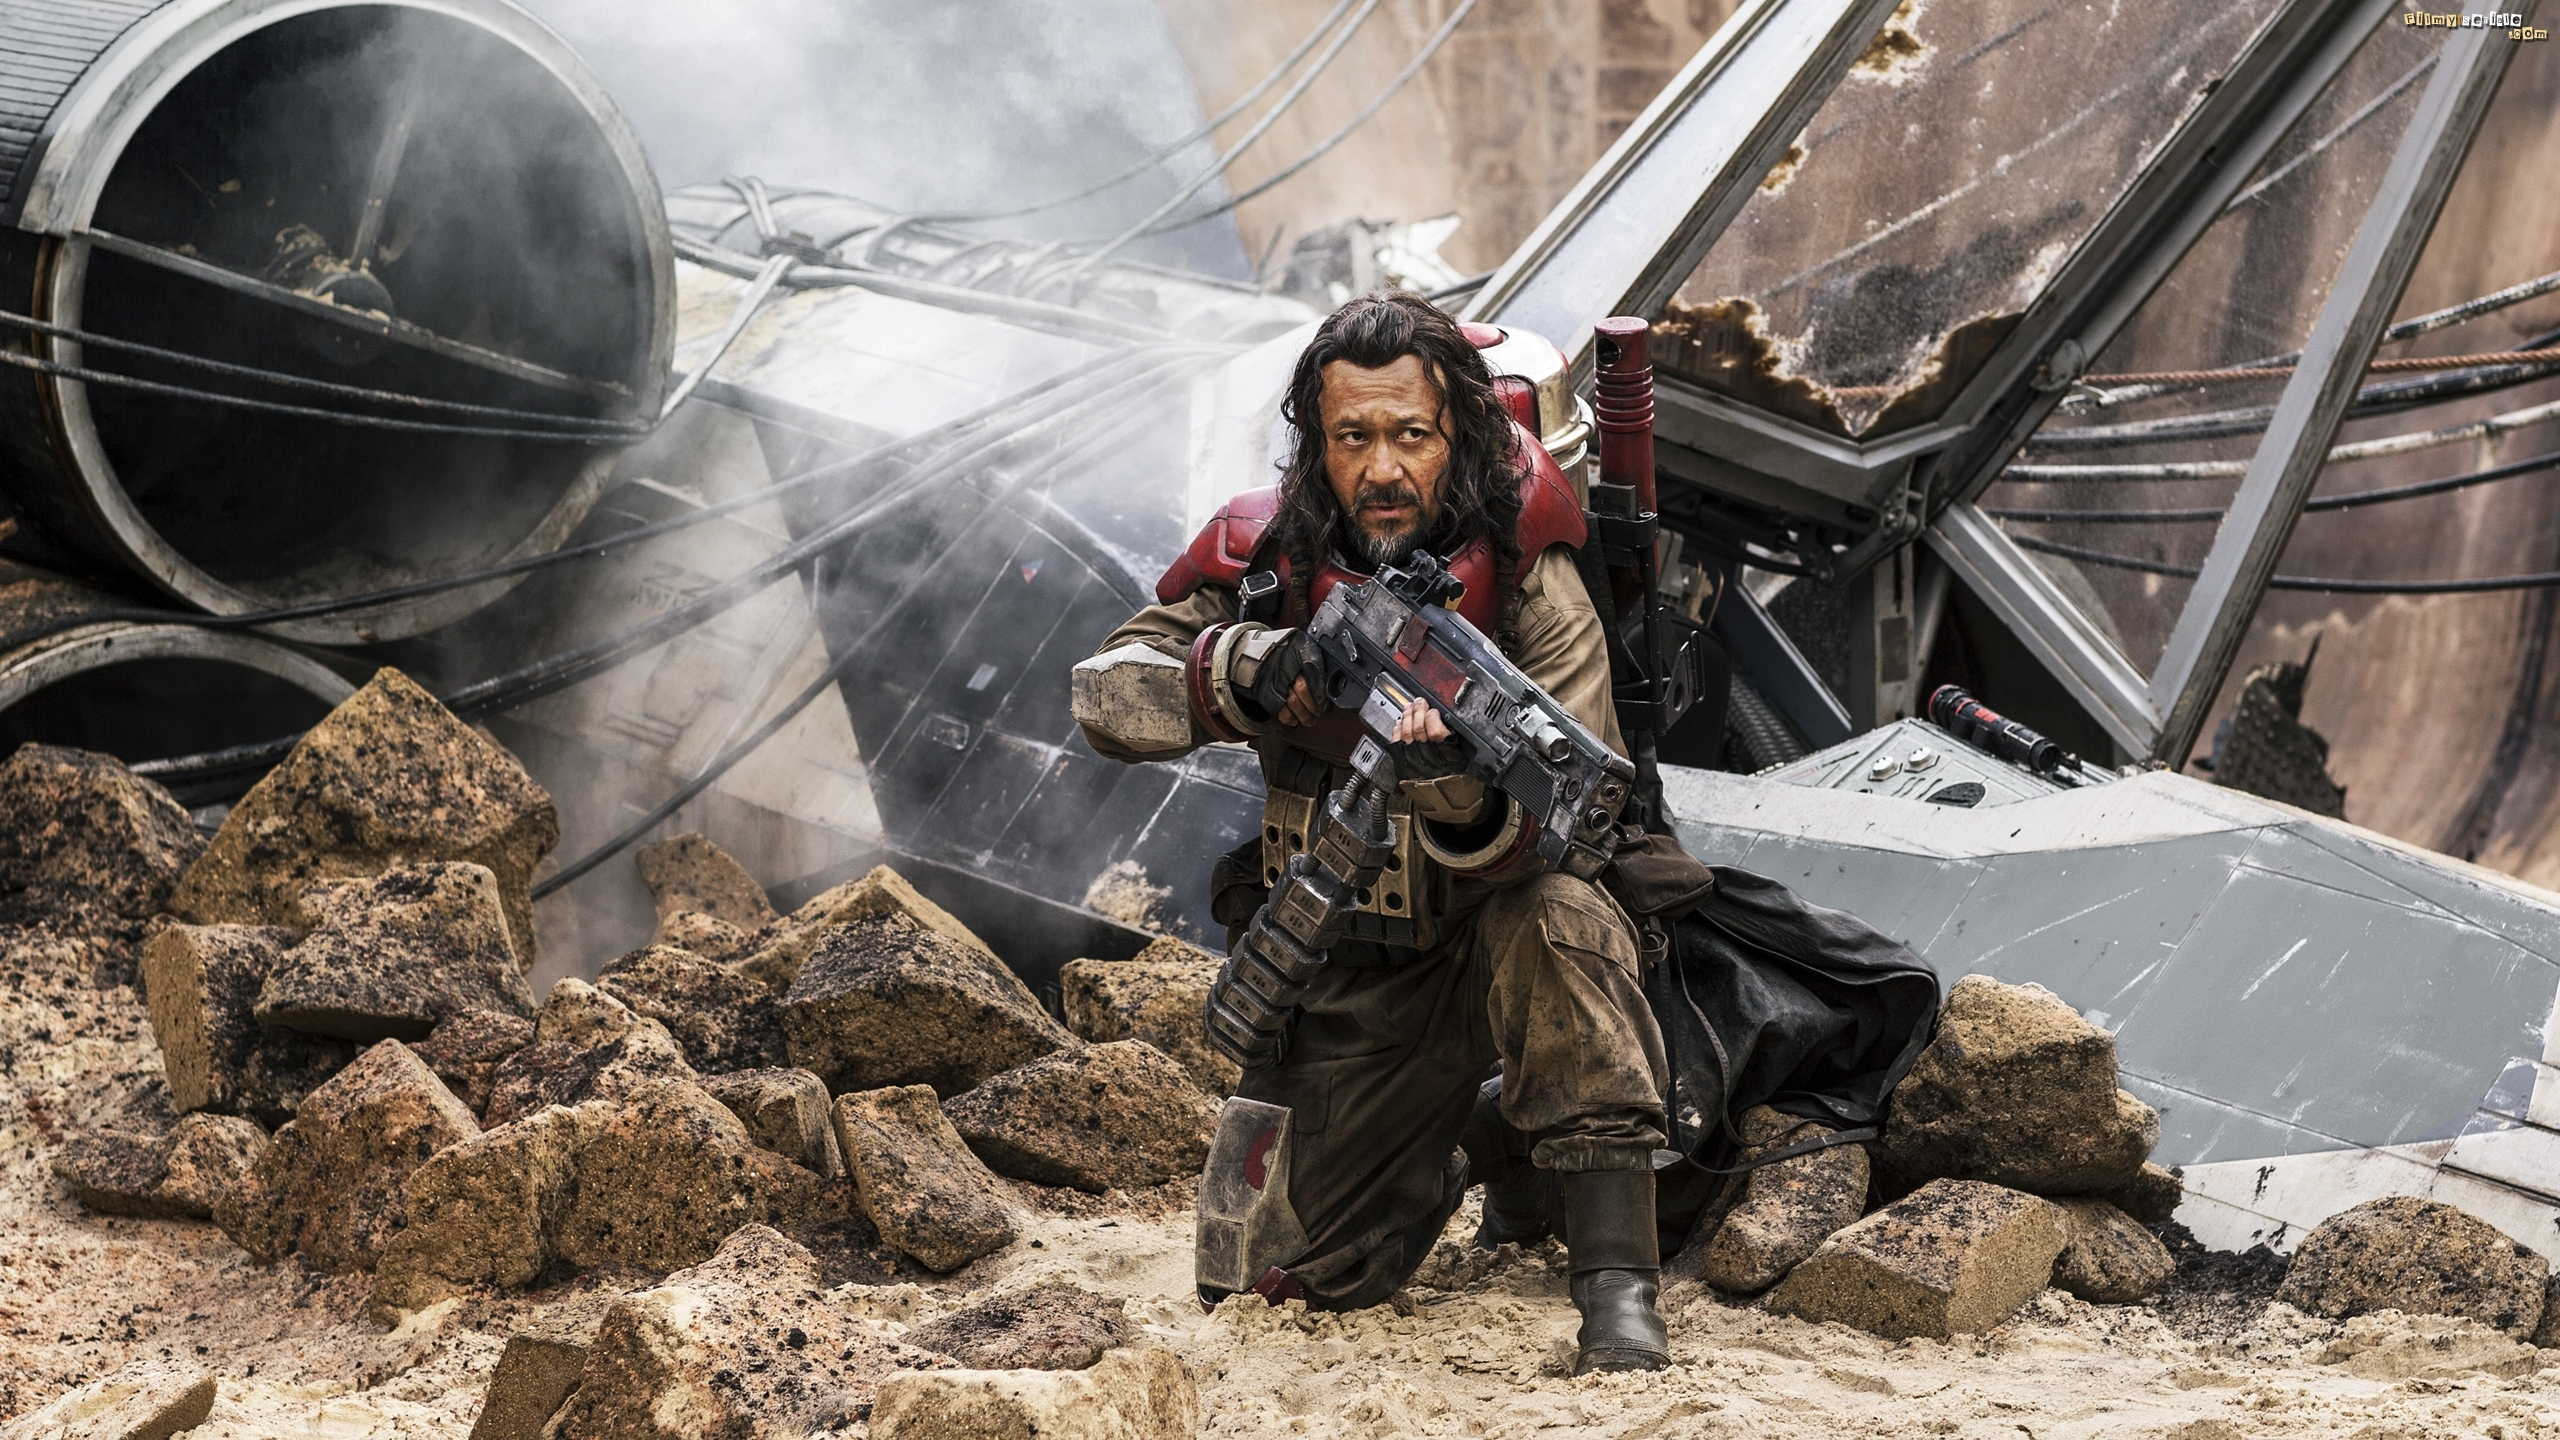 Film, Łotr 1. Gwiezdne wojny – historie, Rogue One: A Star Wars Story, Jiang Wen